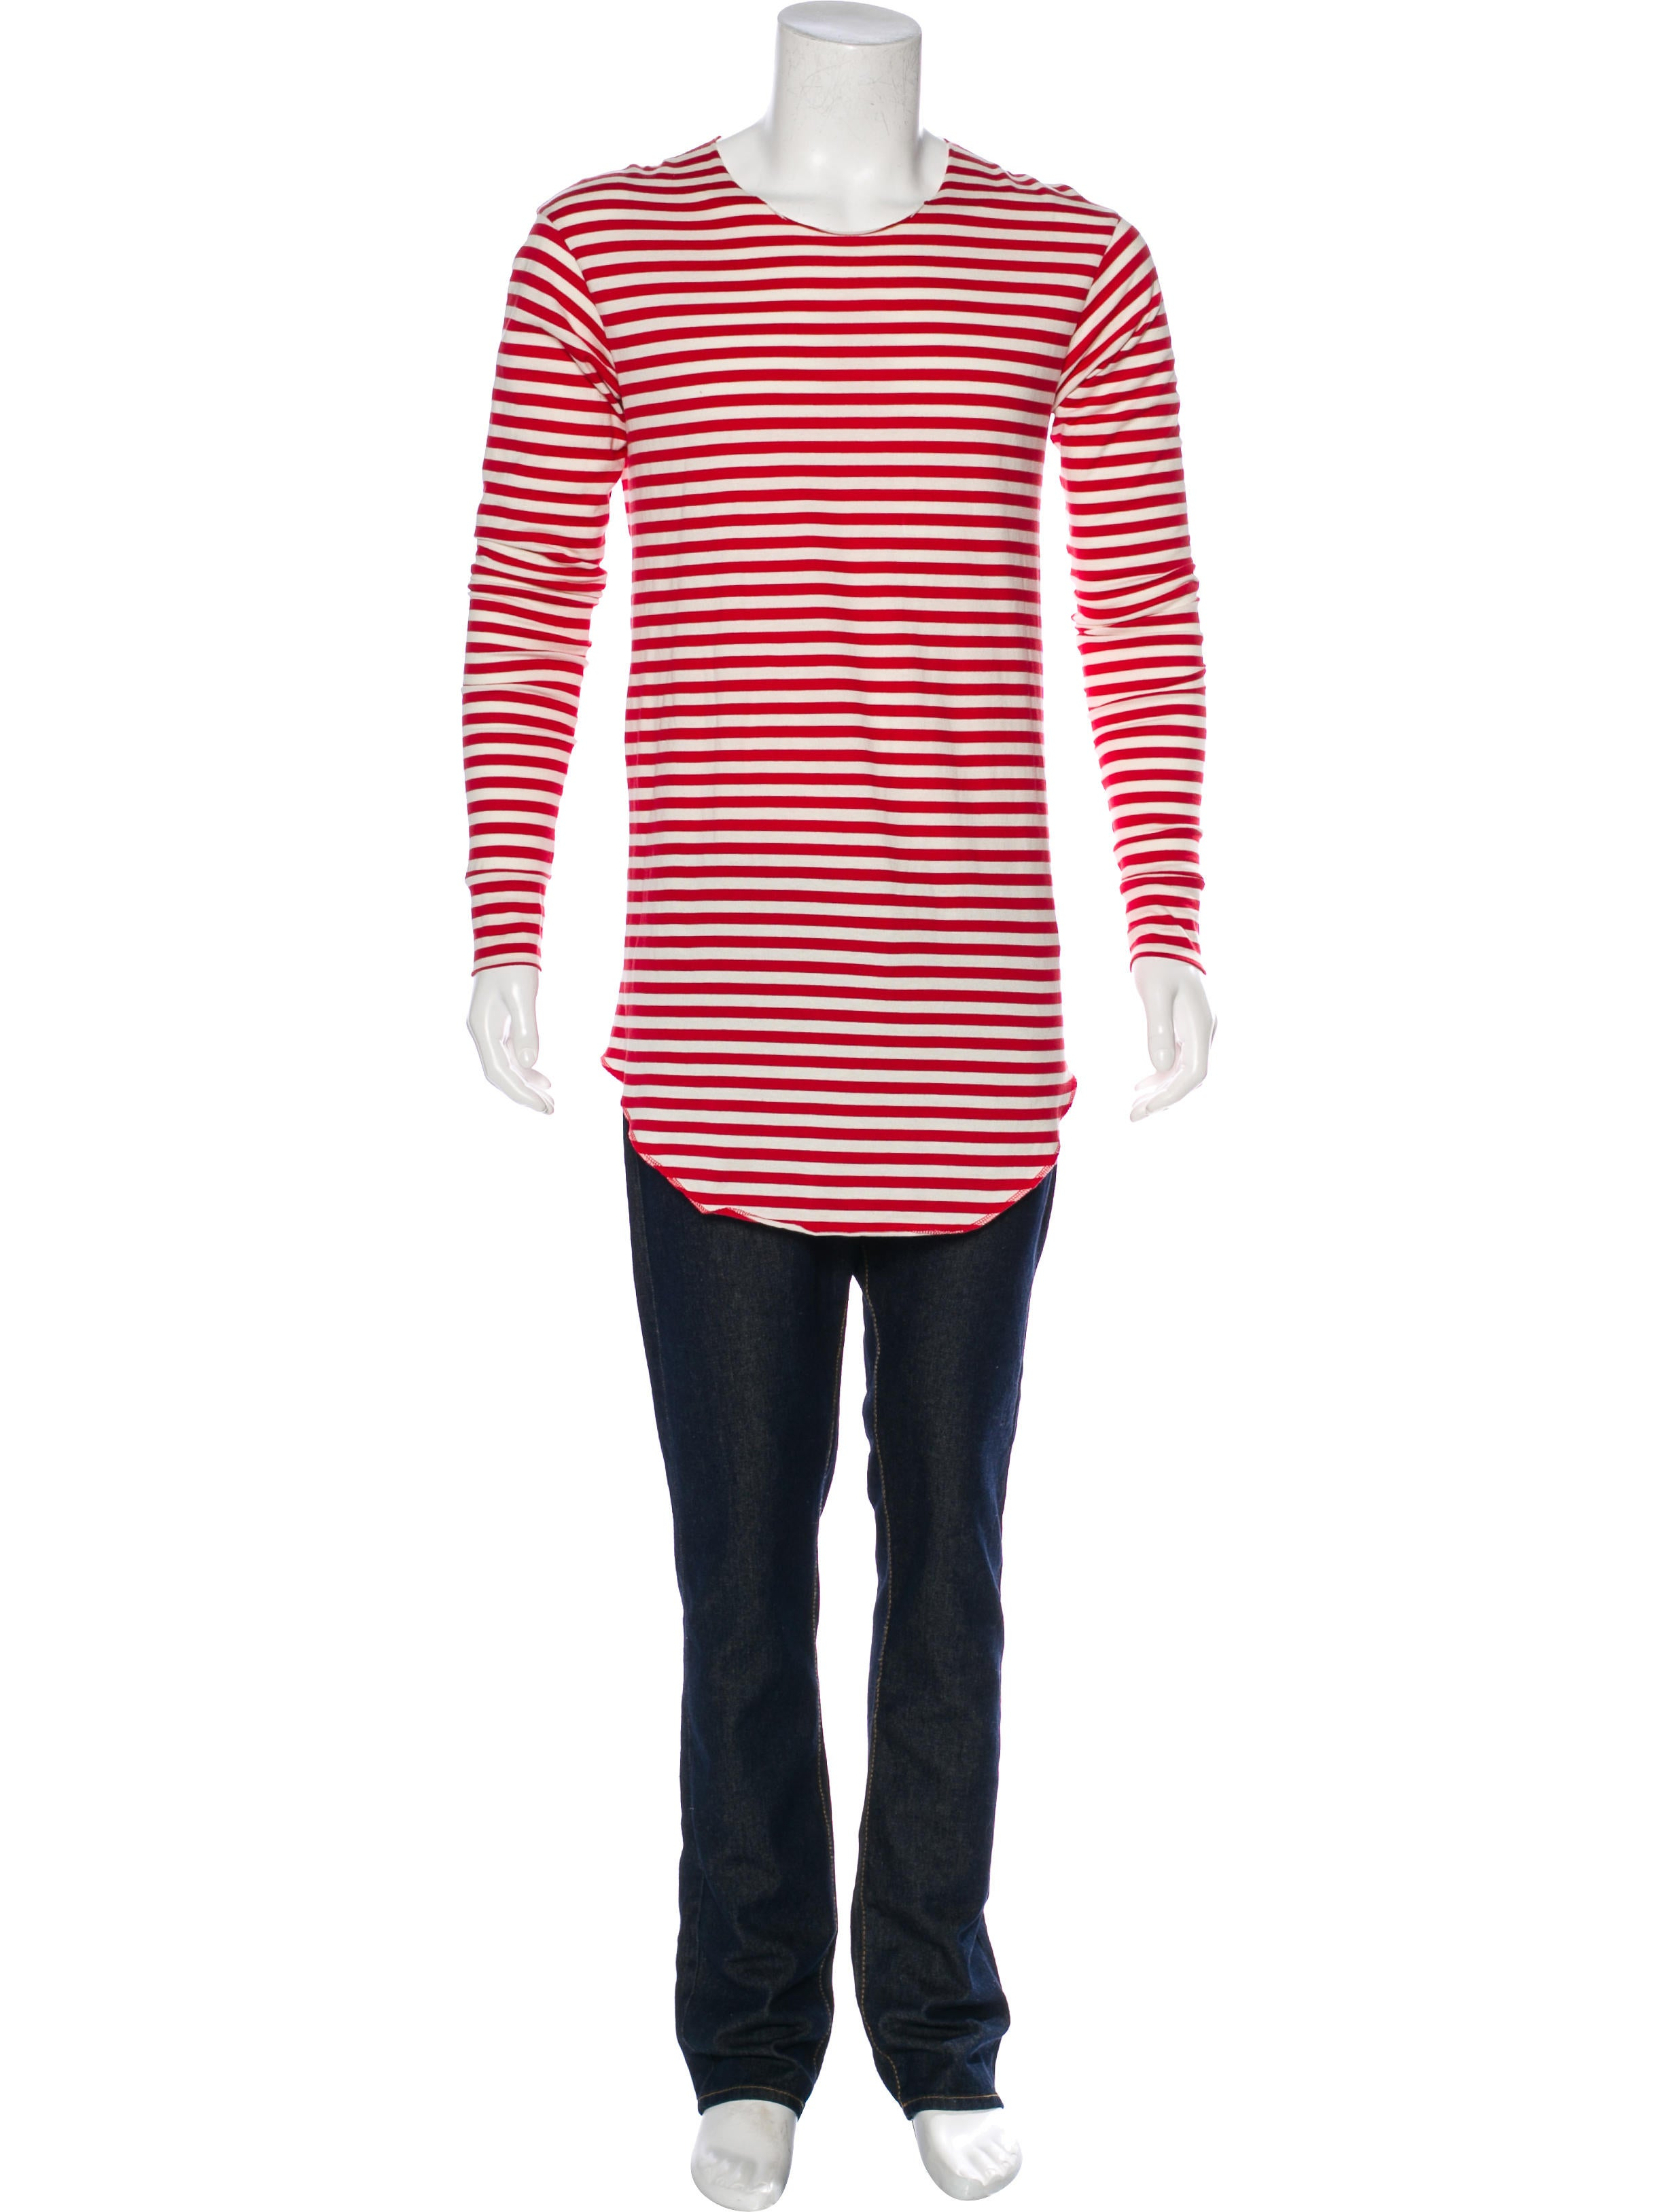 Fear of god striped long sleeve t shirt clothing Striped long sleeve t shirt